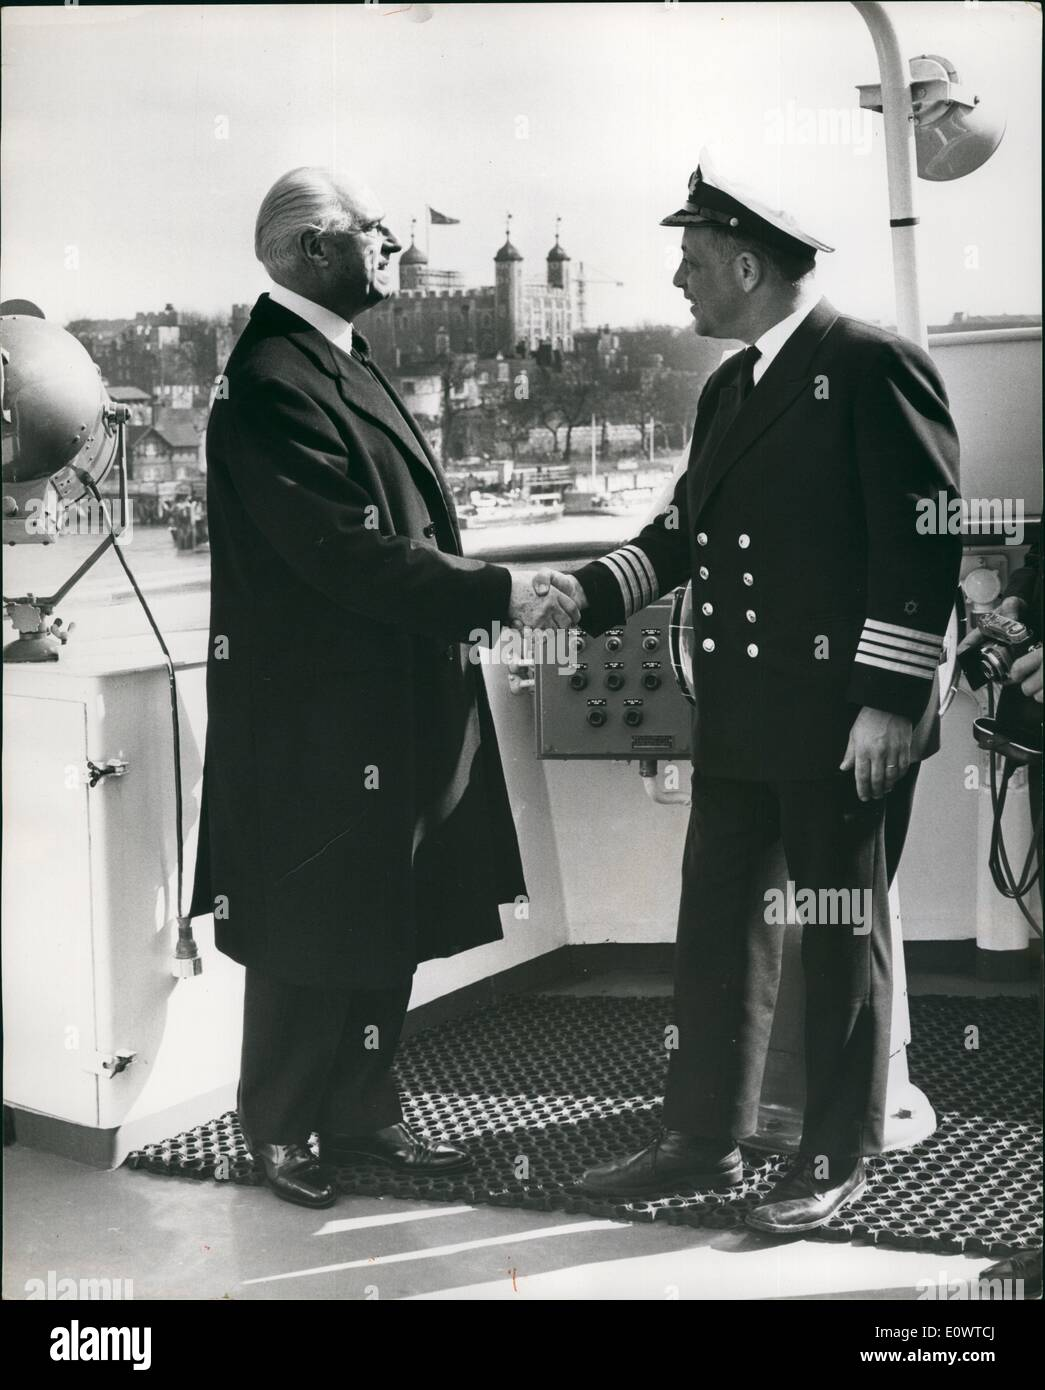 Mar. 03, 1964 - Lord Mayor of London visits Newship: The Lord Mayor of London, Alderman C.James Harman and the City Sheriffs,this morning paid a formal visit to the new 7,000 ton Israel car ferry m.v. Bilu which has come to London on it's maiden voyage from the Belgian builders in Antwerp. Bilu is to cruise in the Mediterranean before going into regular service between Italy and Israel. Photo shows The Lord Mayor shakes hands with Benjamin Yatir, the Captain of the Bilu this morning. In the background can be seen the Tower of London. - Stock Image